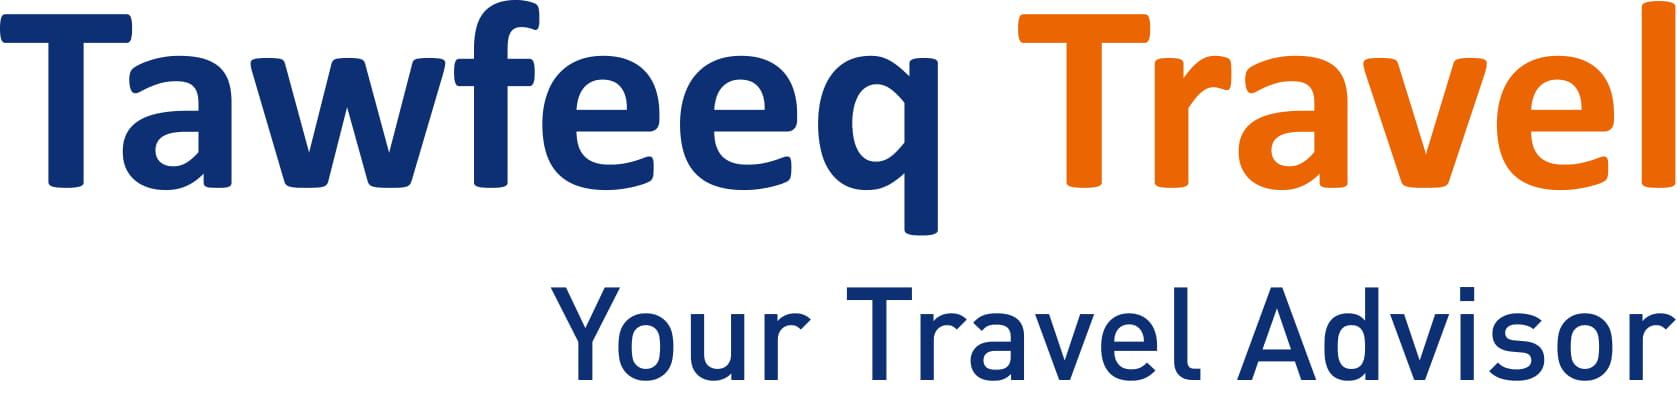 Tawfeeq Travel Group